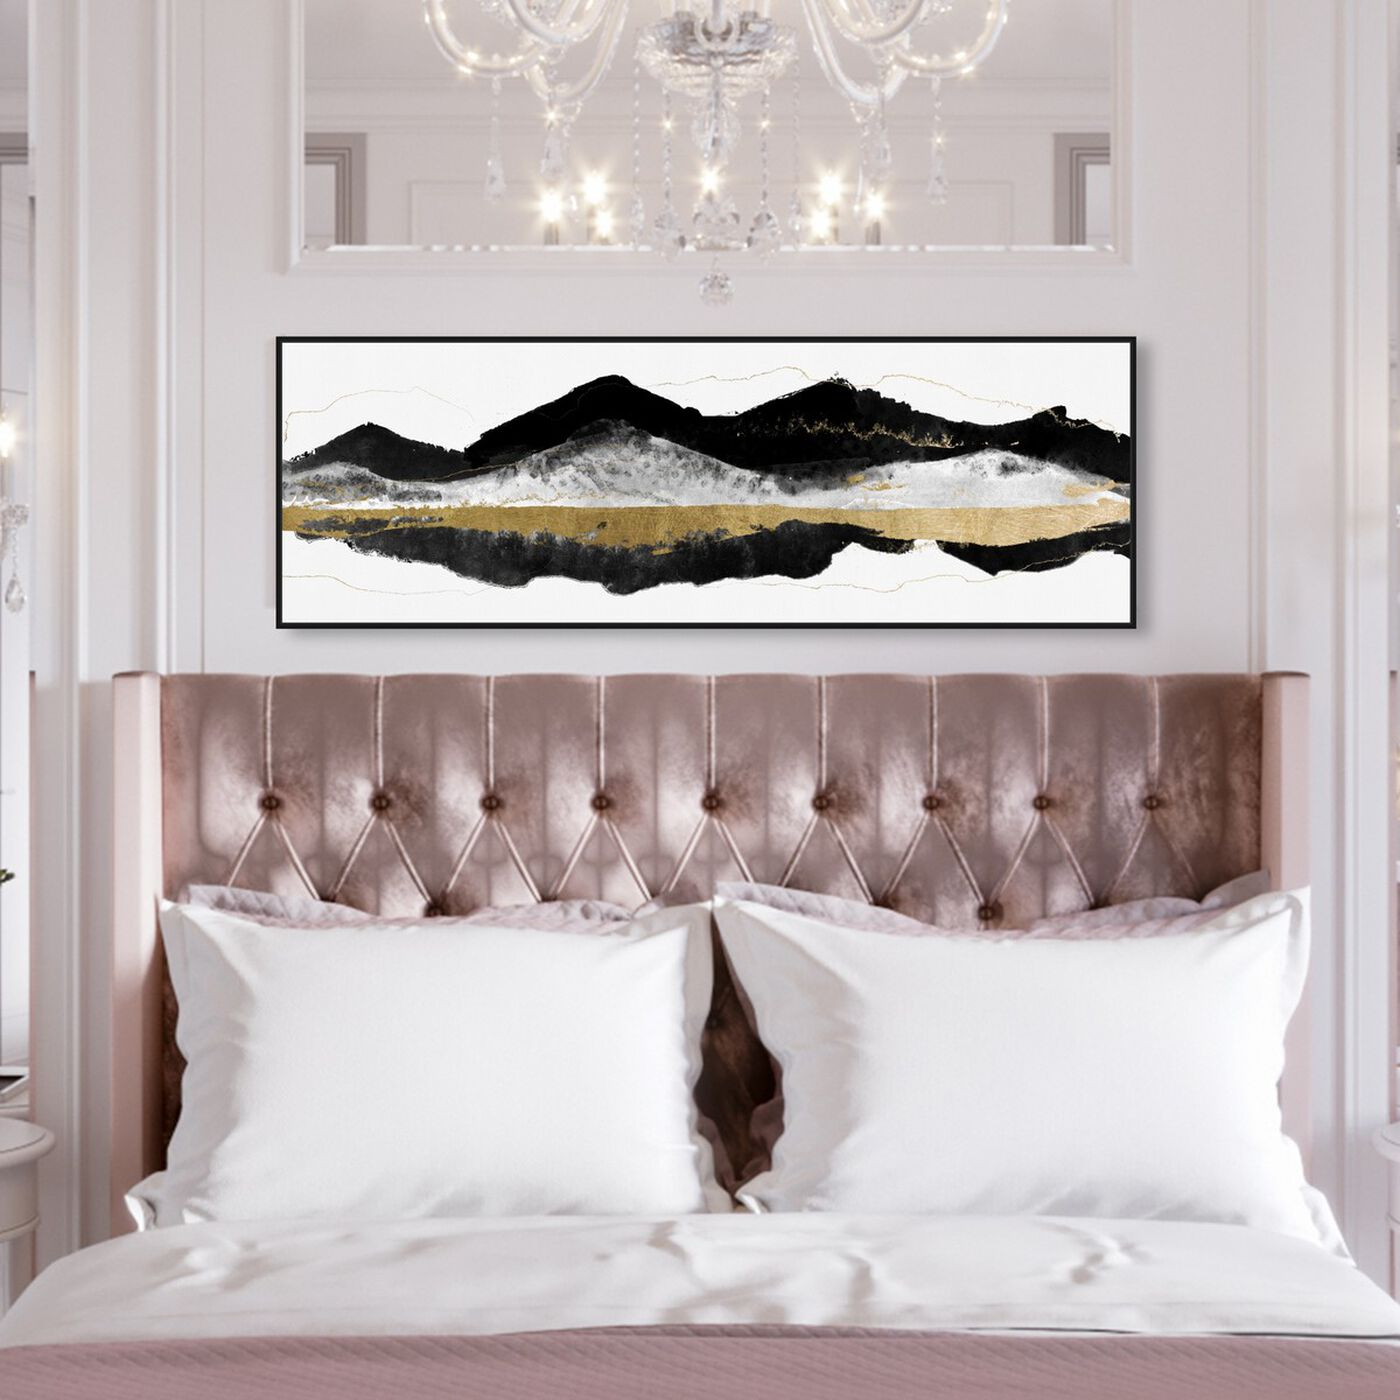 Hanging view of Noir et Gold Mountains featuring abstract and paint art.